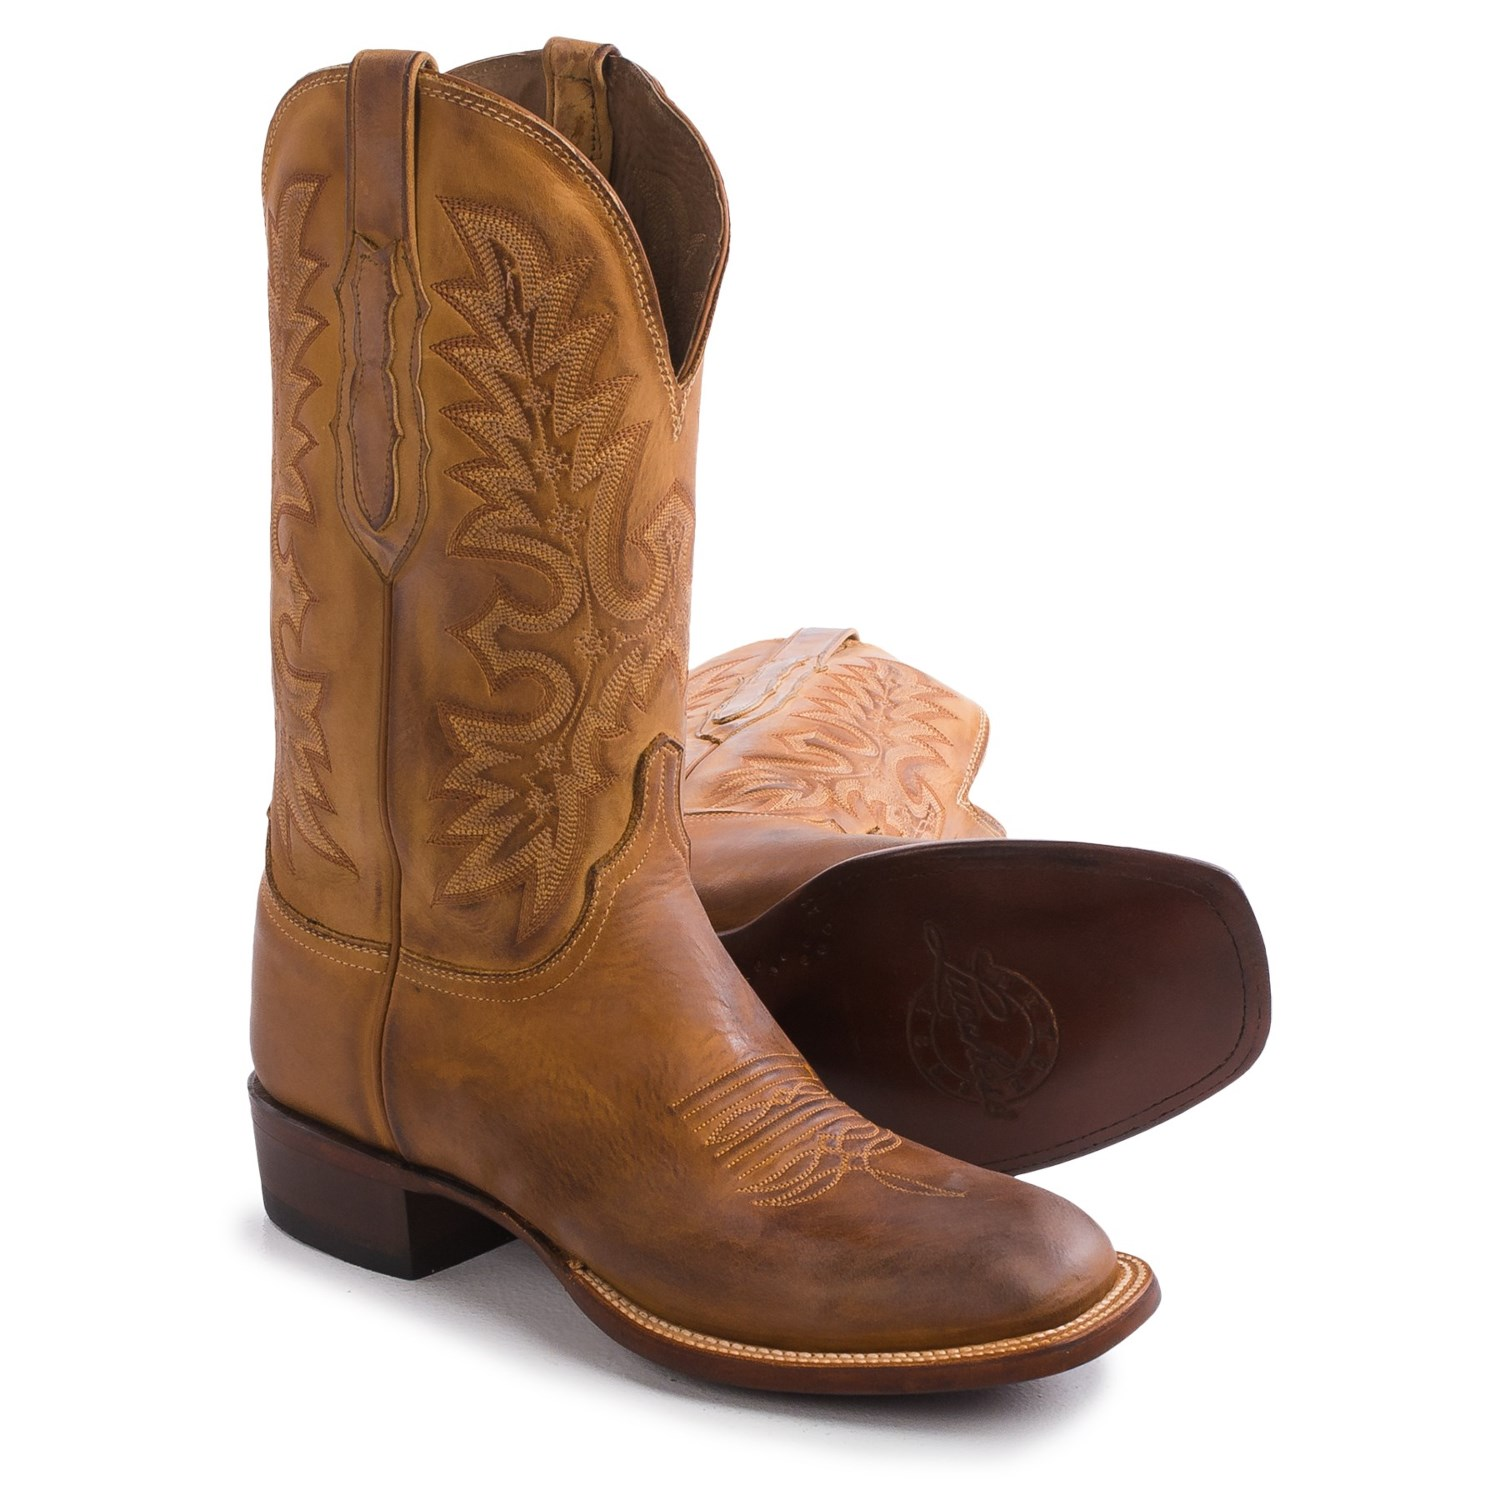 Lucchese Wide Square Toe Cowboy Boots (For Men)